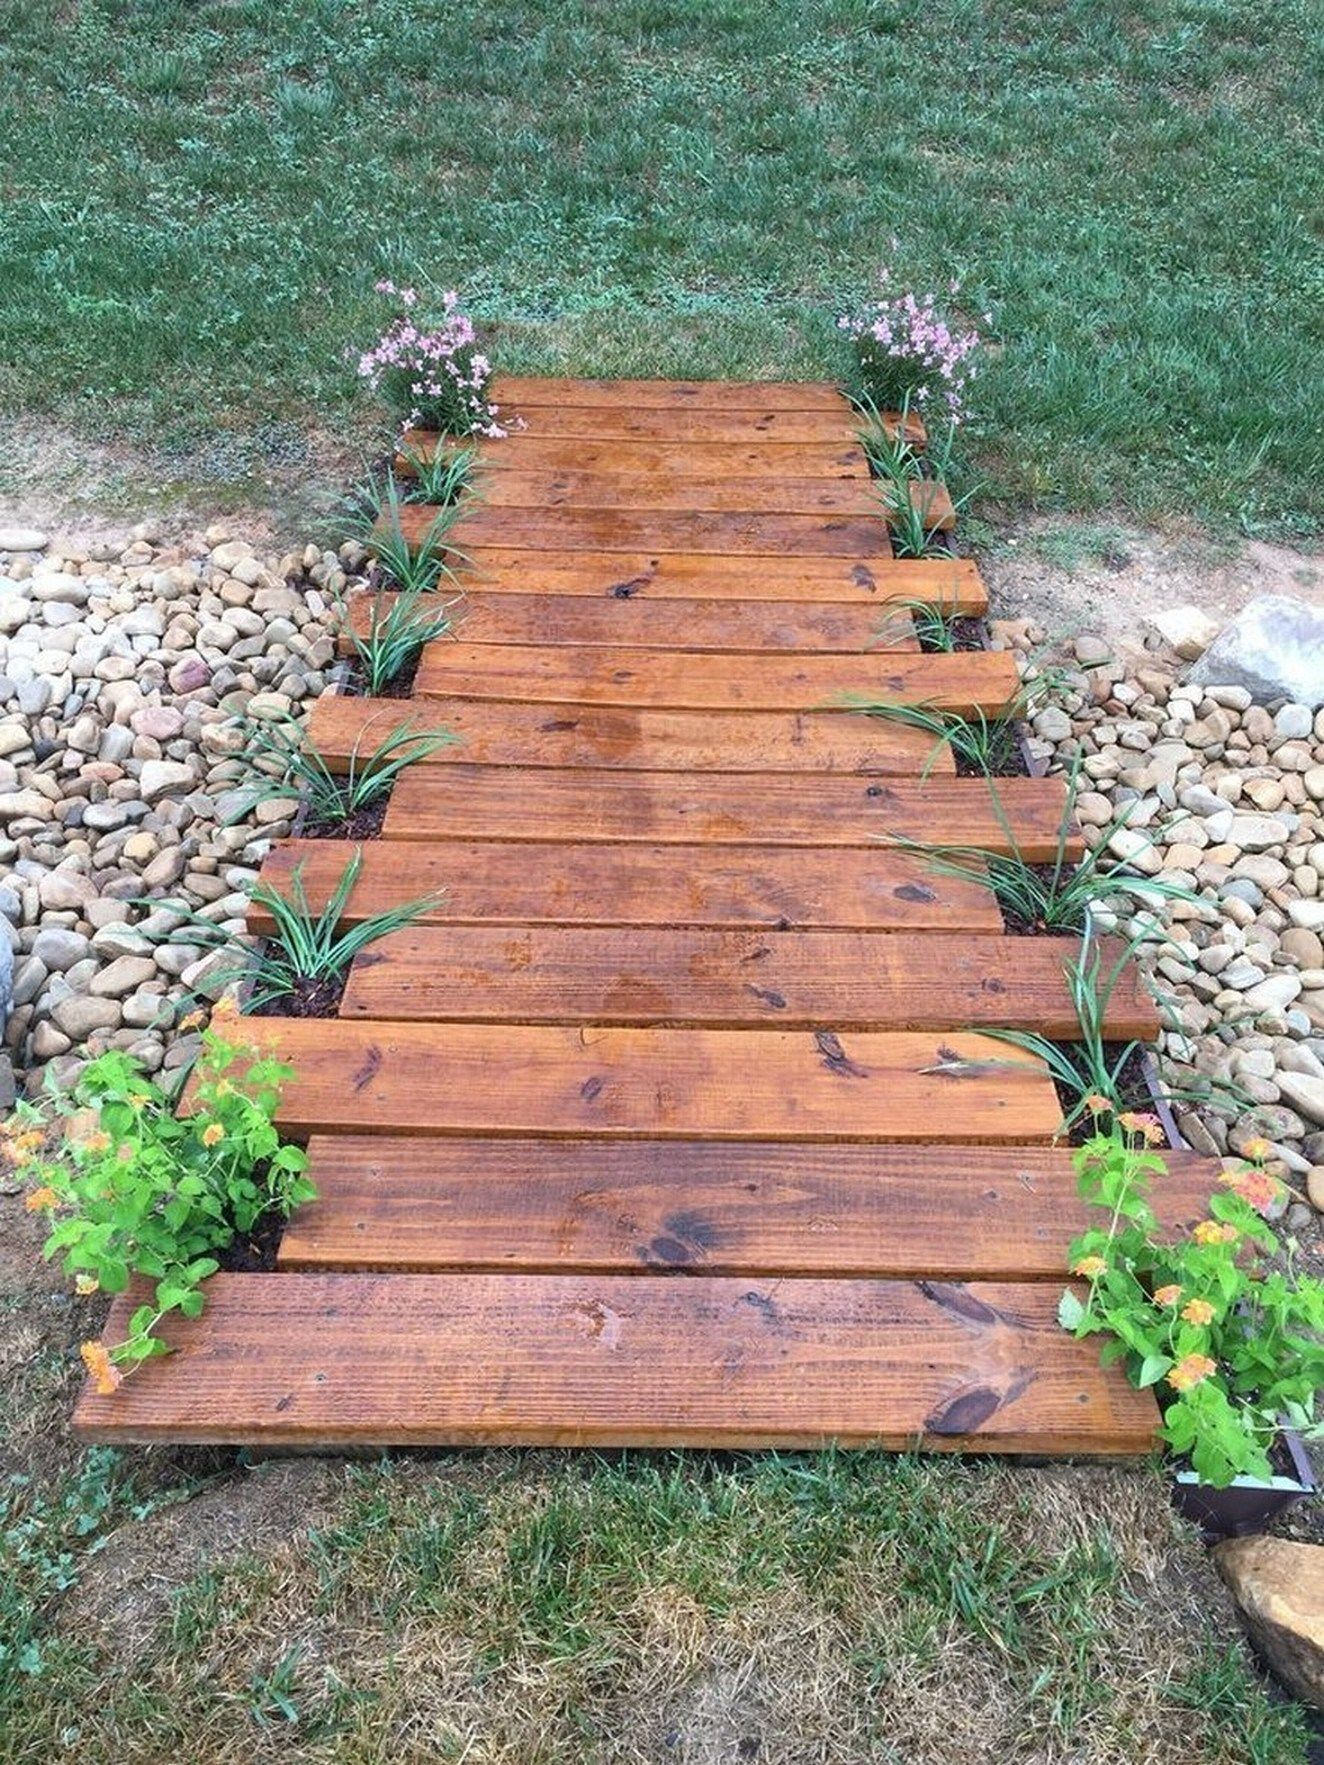 50 amazing garden path and walkway ideas you can try now page 34 ...tting to rei...,  #Amazing #amazinggardenideasdiyprojects #garden #ideas #Page #Path #rei #tting #Walkway